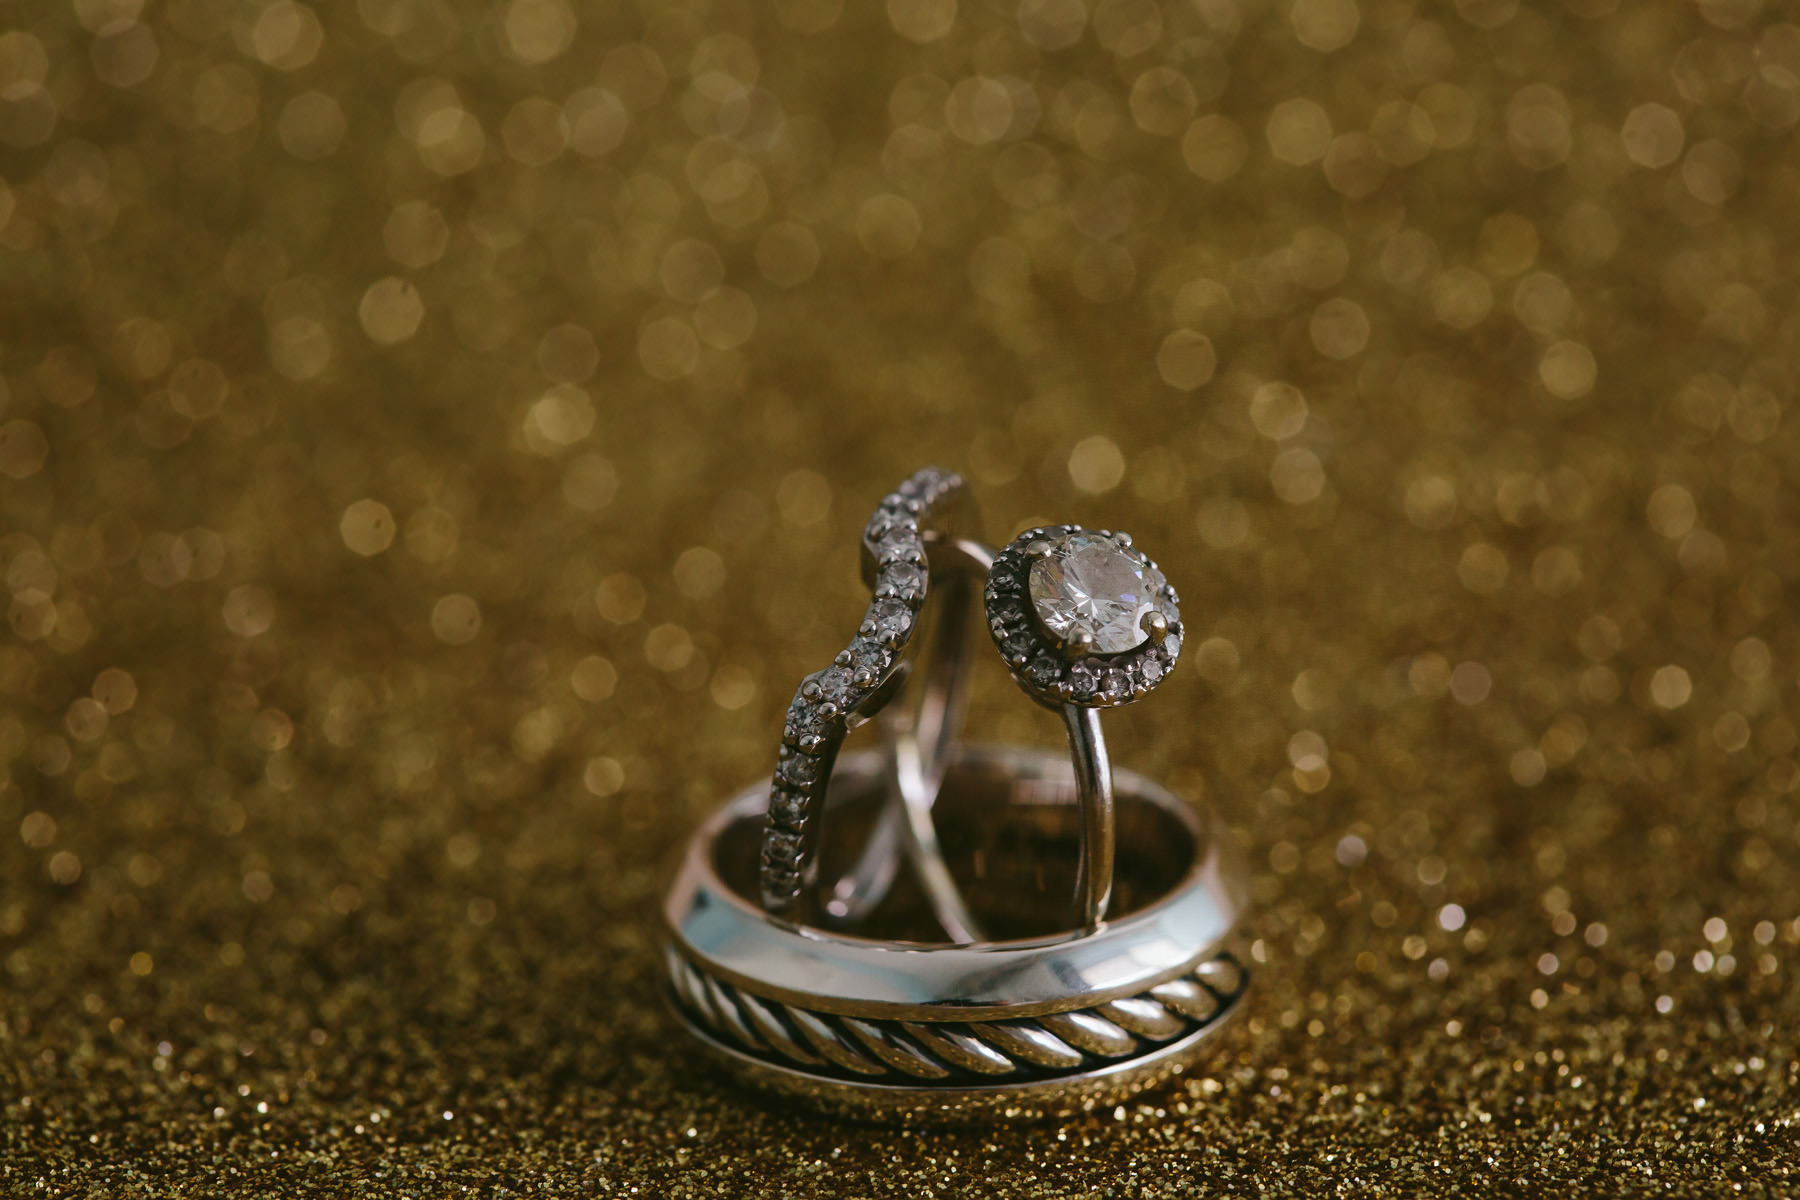 sparkly-wedding-rings-details-macro-tiny-house-photo-photogrpaher.jpg